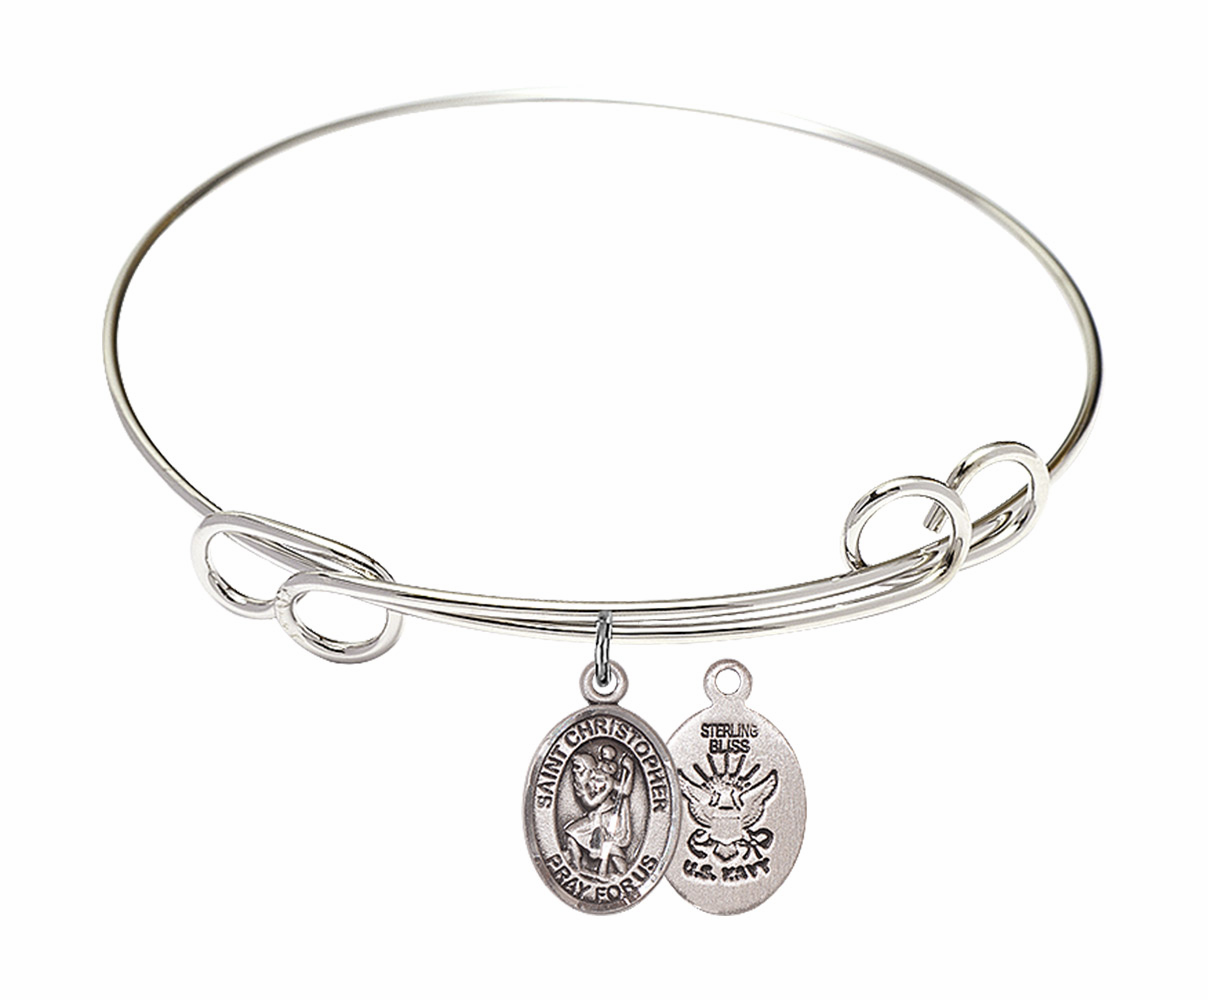 Round Loop St Christopher Navy Bangle Charm Bracelet by Bliss